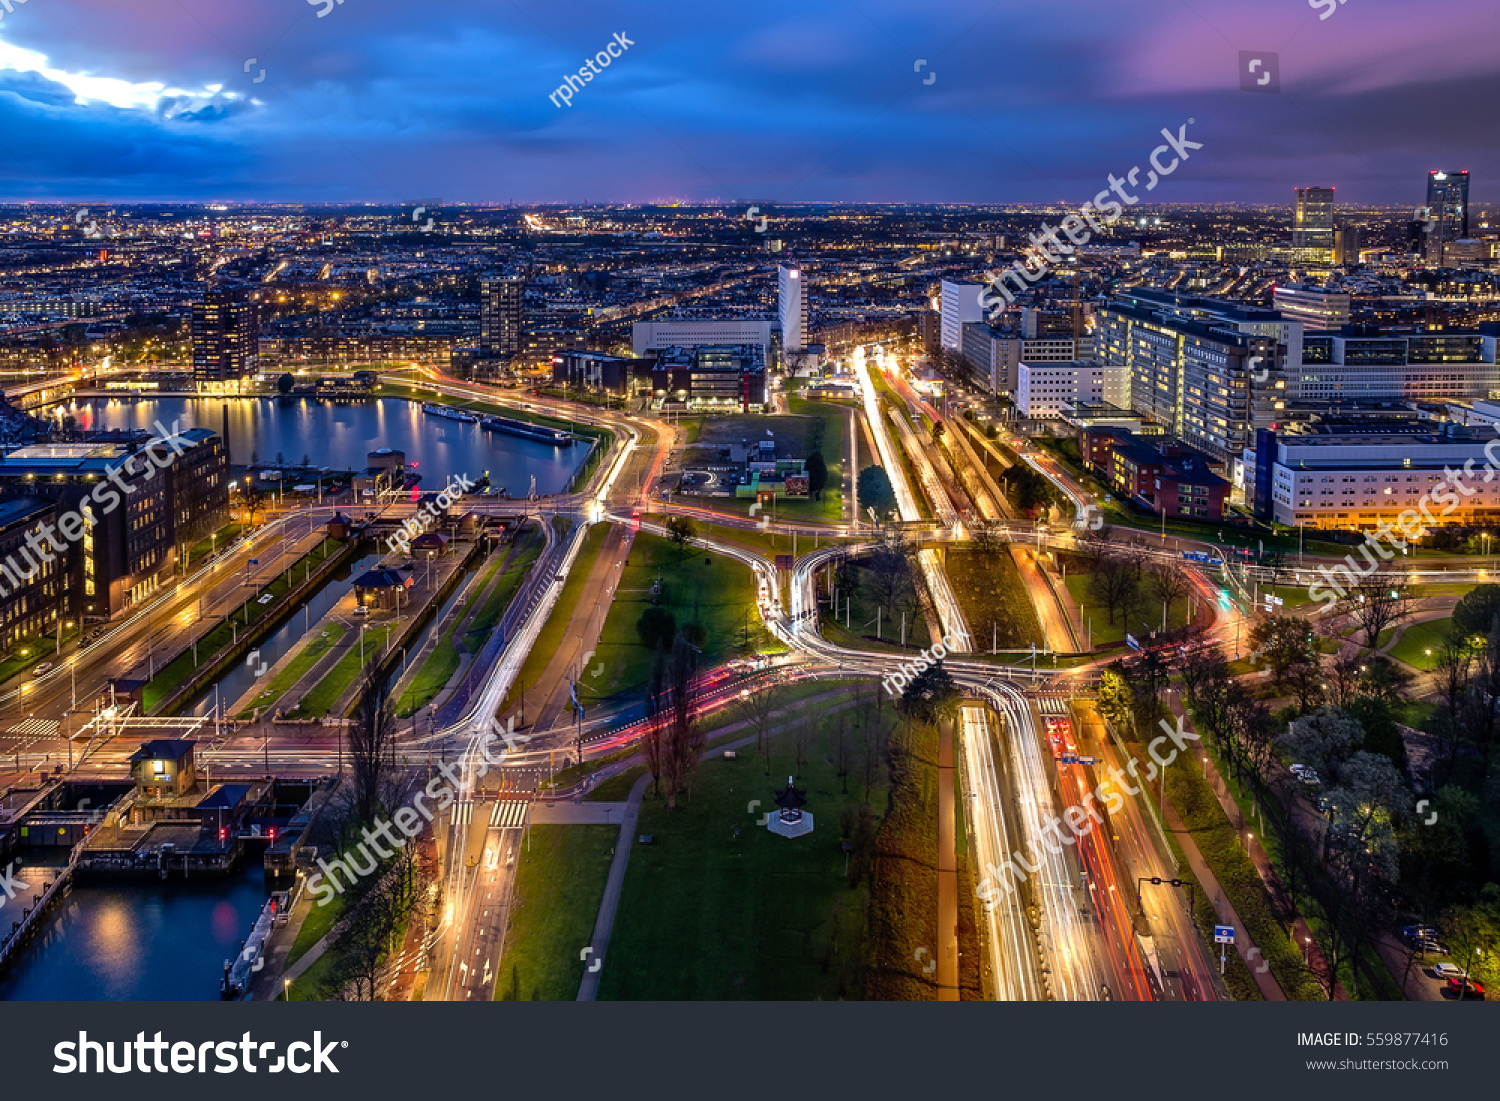 Rotterdam City Netherlands Located South Holland Stock Photo - Where is the netherlands located